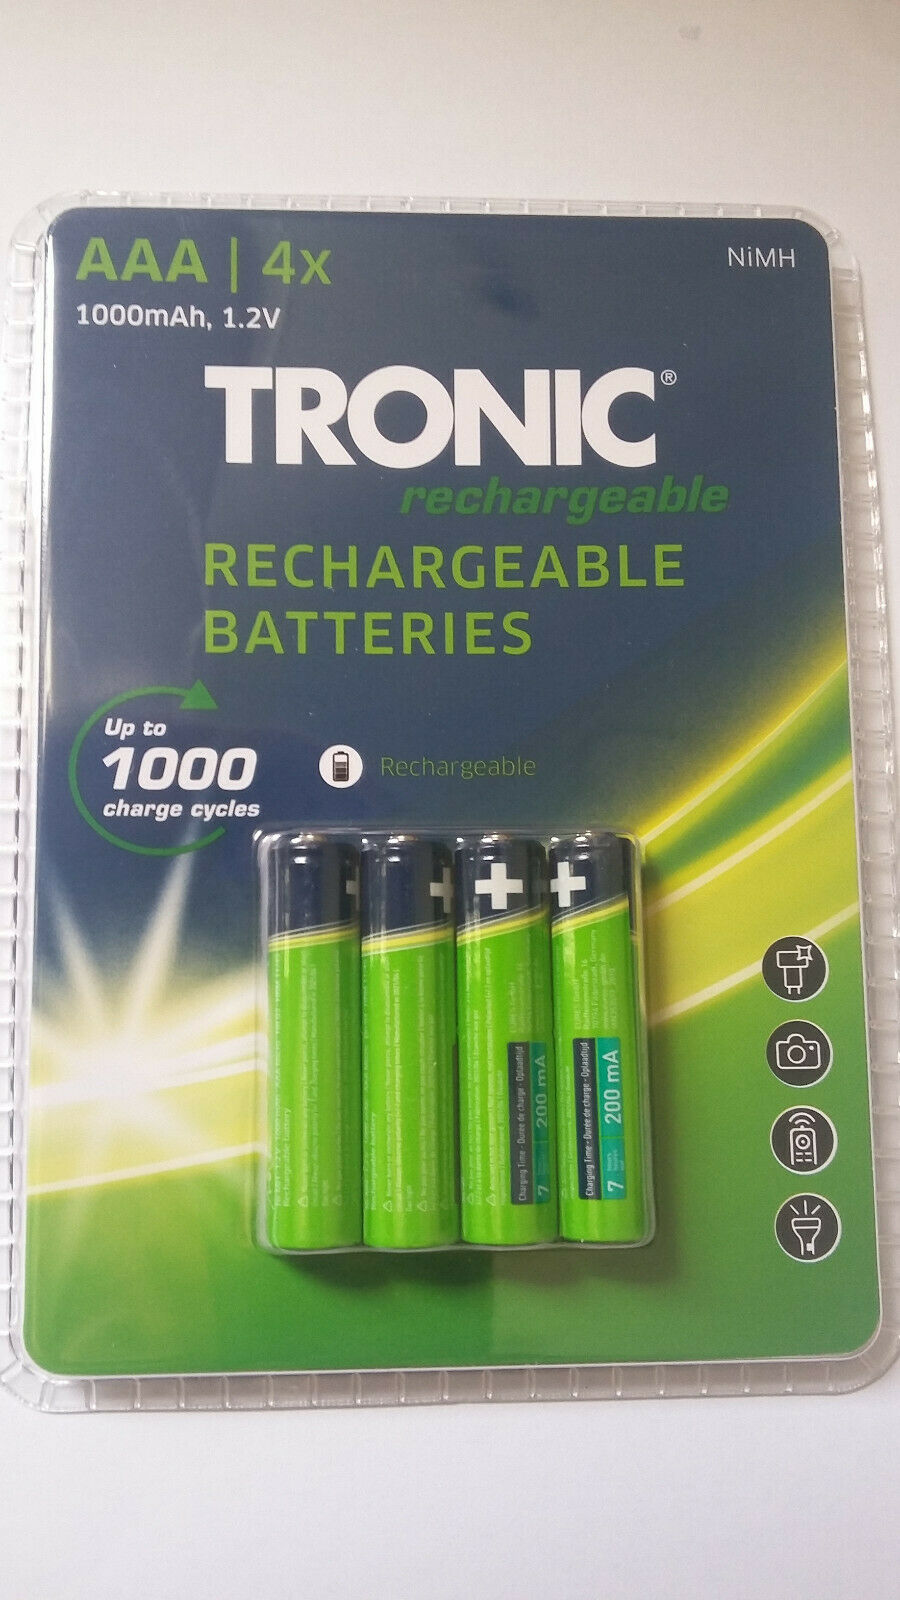 Tronic NiMH Rechargeable Batteries AAA 1.2v 1000mah Pack Of 4 Up to 1000 Charges